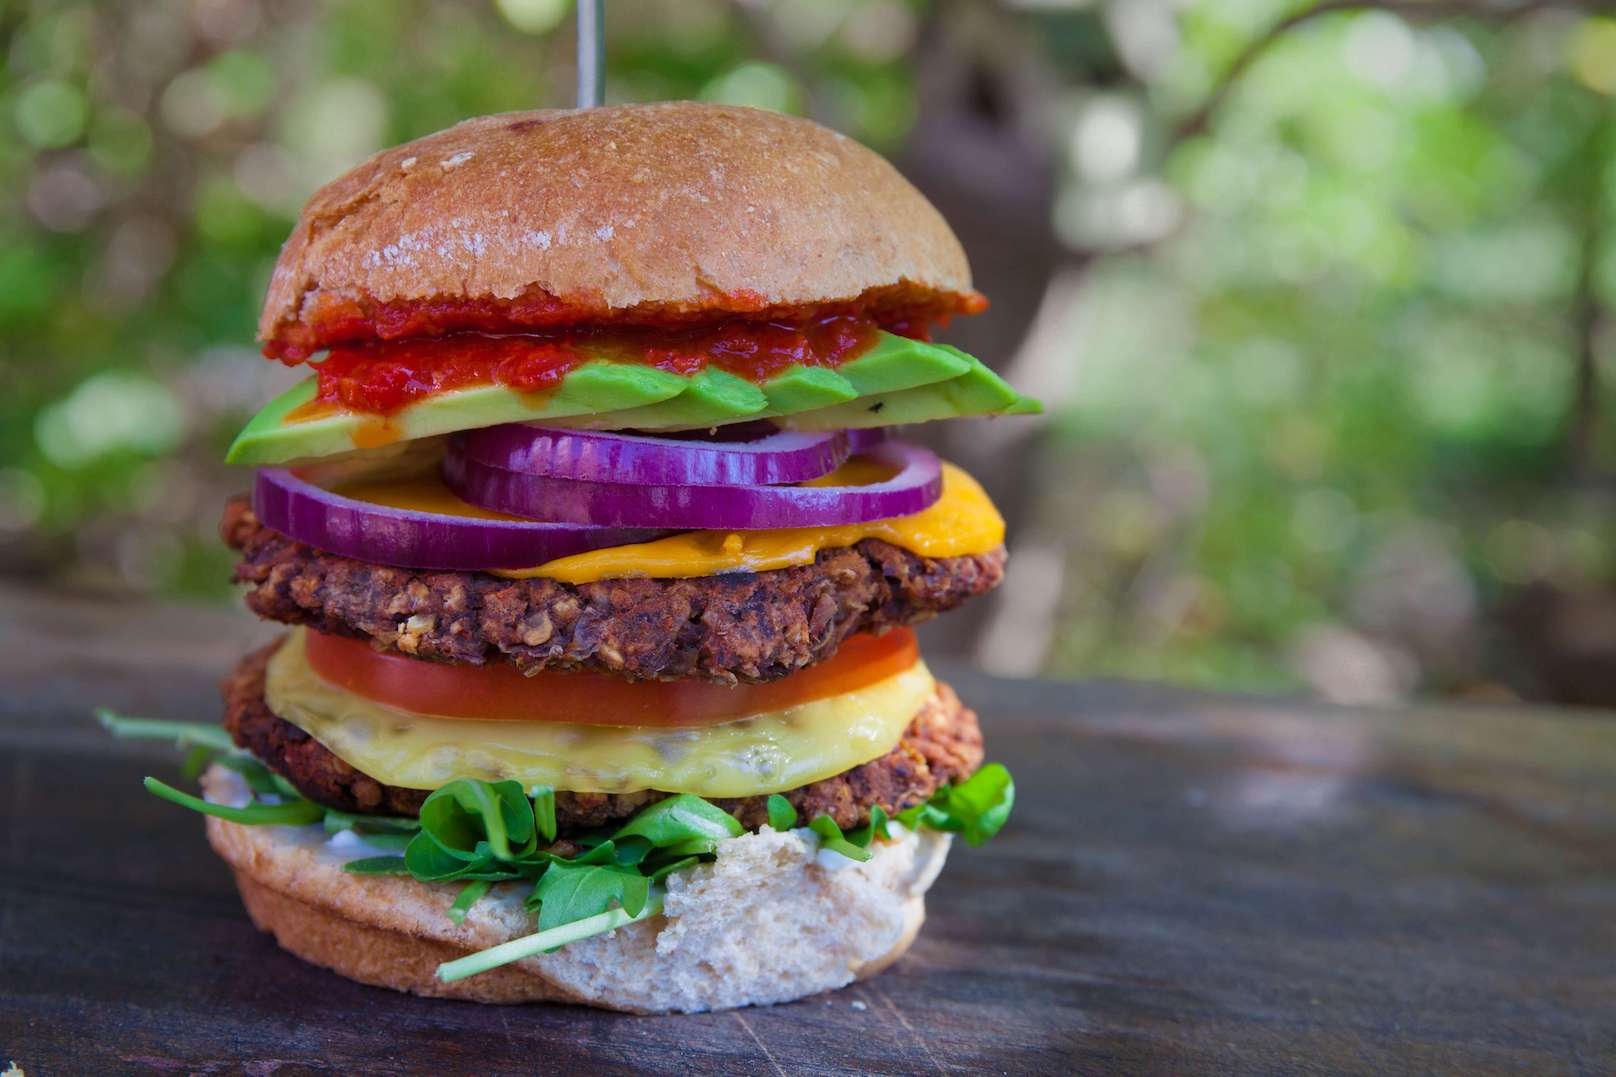 58% of Americans Choosing Vegan Protein Sources, Study Finds